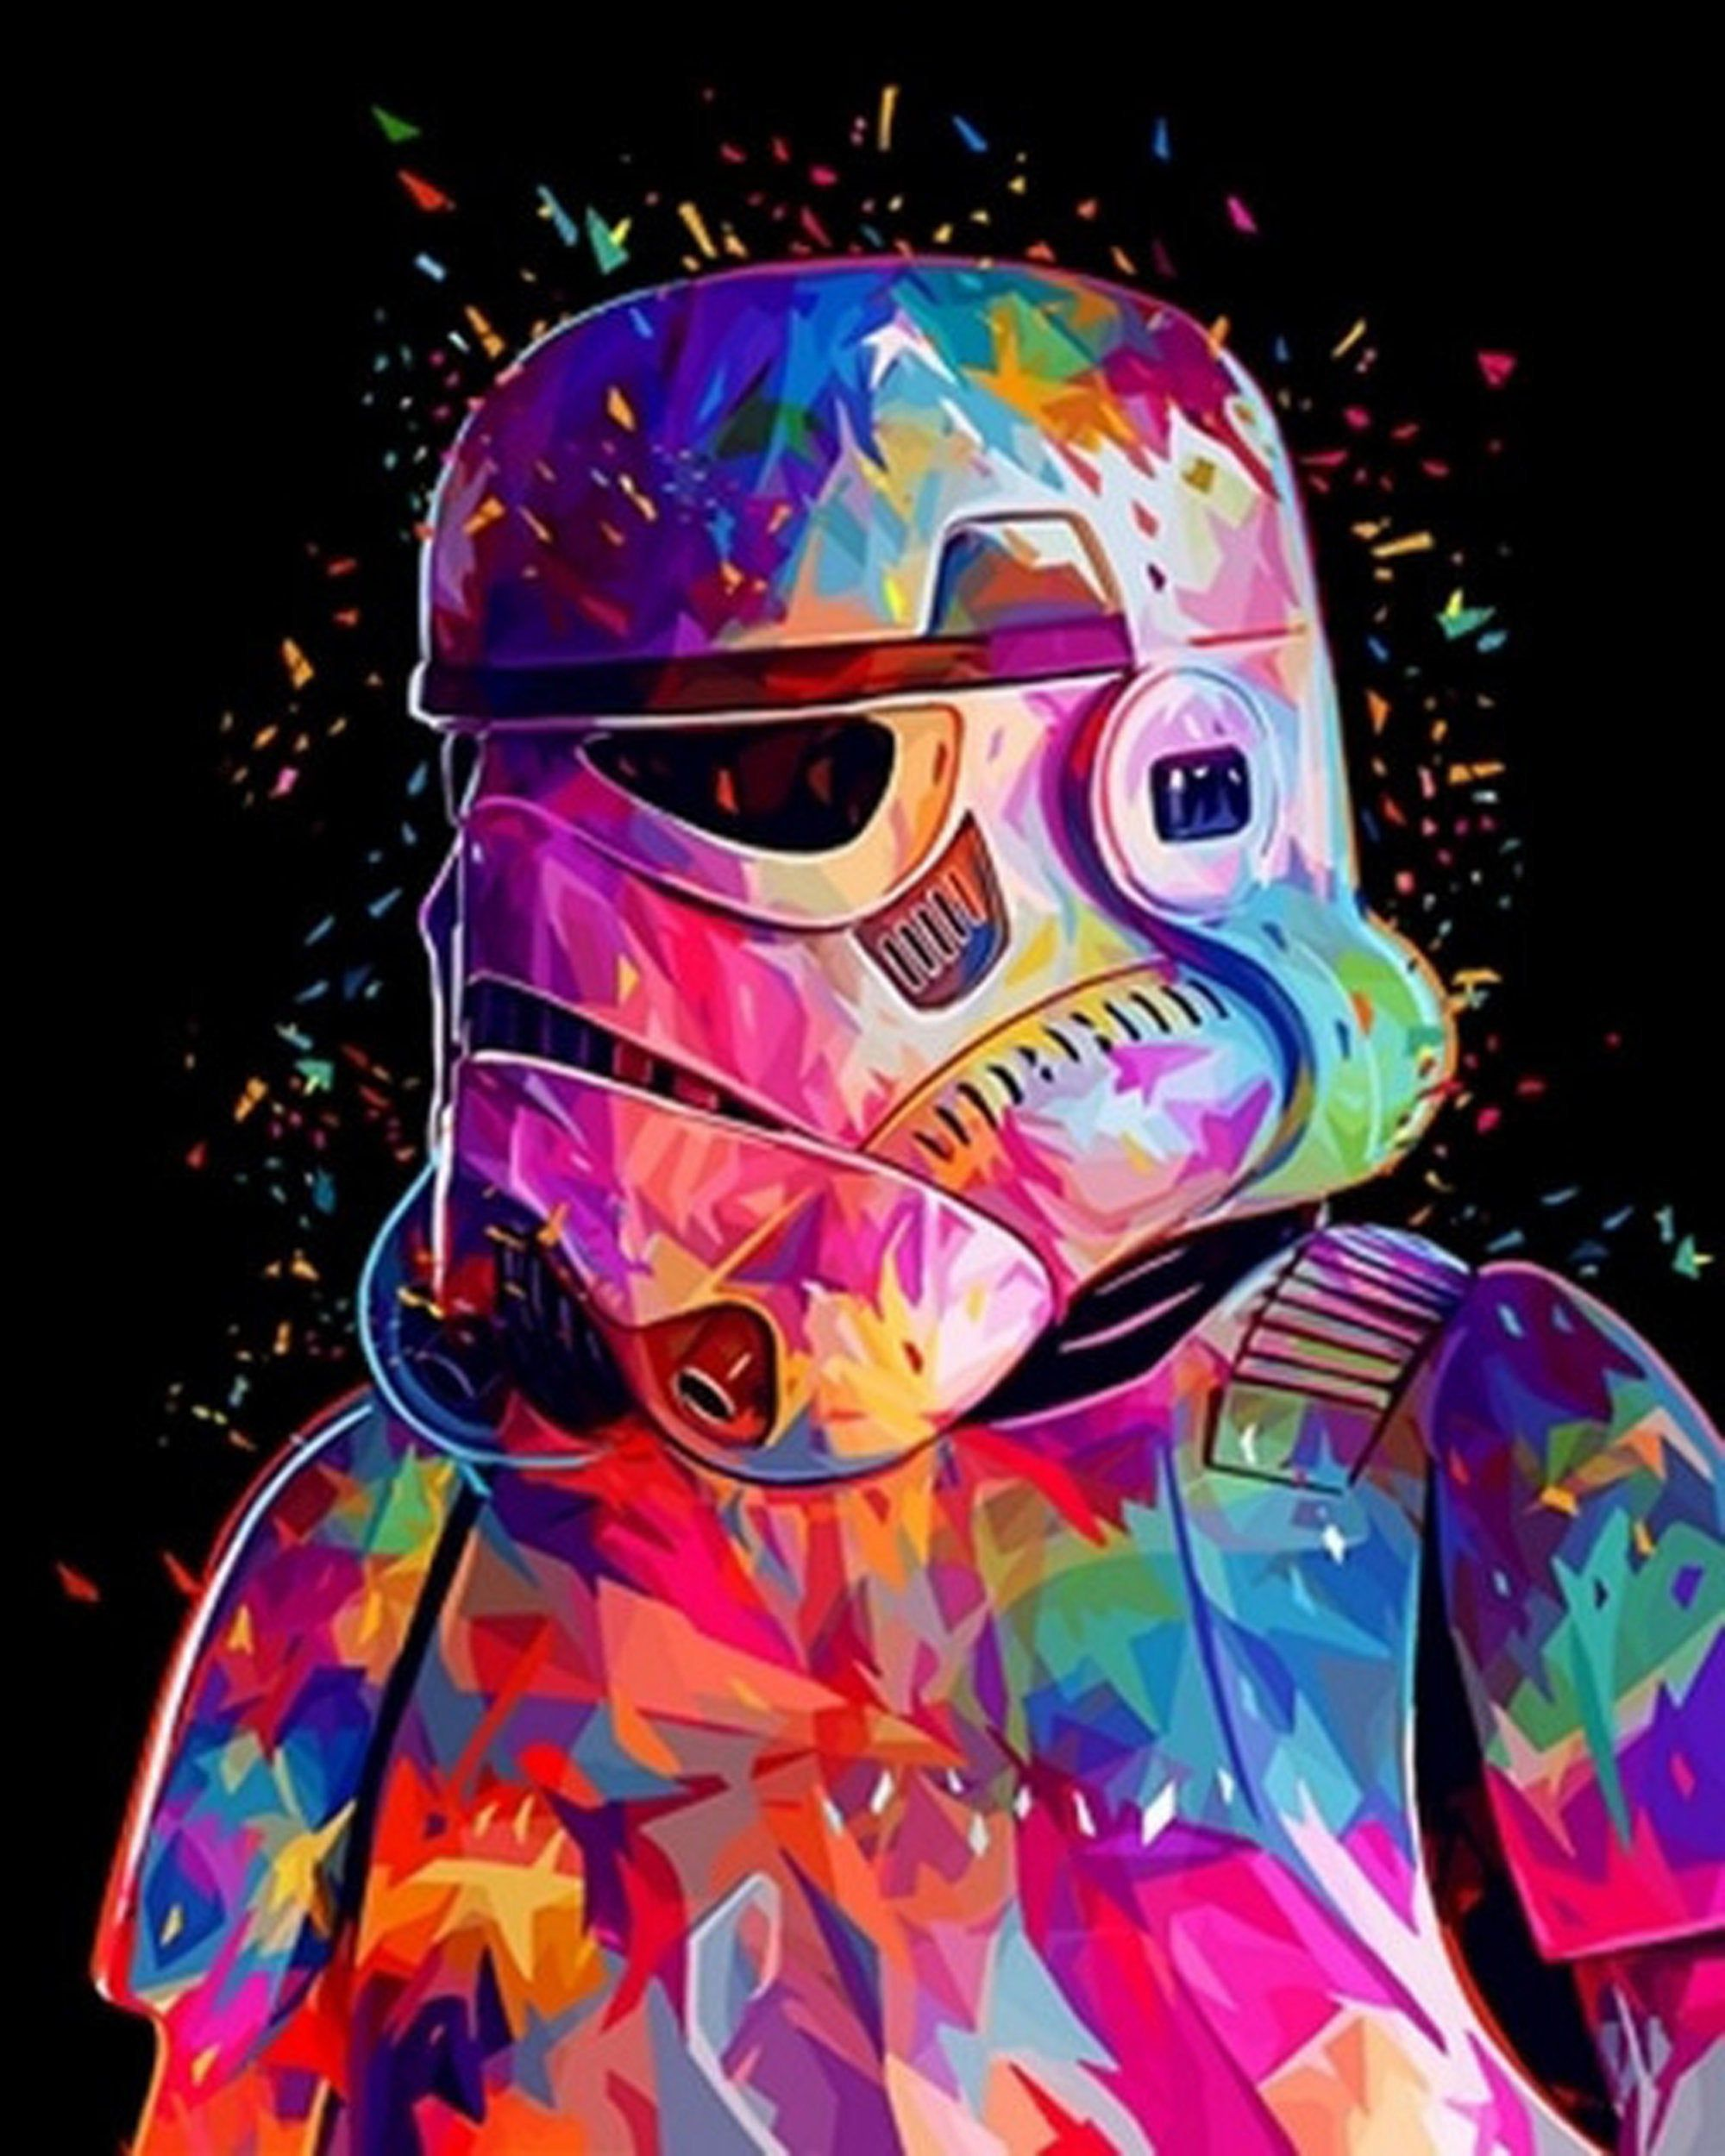 Star Wars Paint by Number Kit, Empire stormtrooper, Painting by numbers, Acrylic picture, For adult, With frame